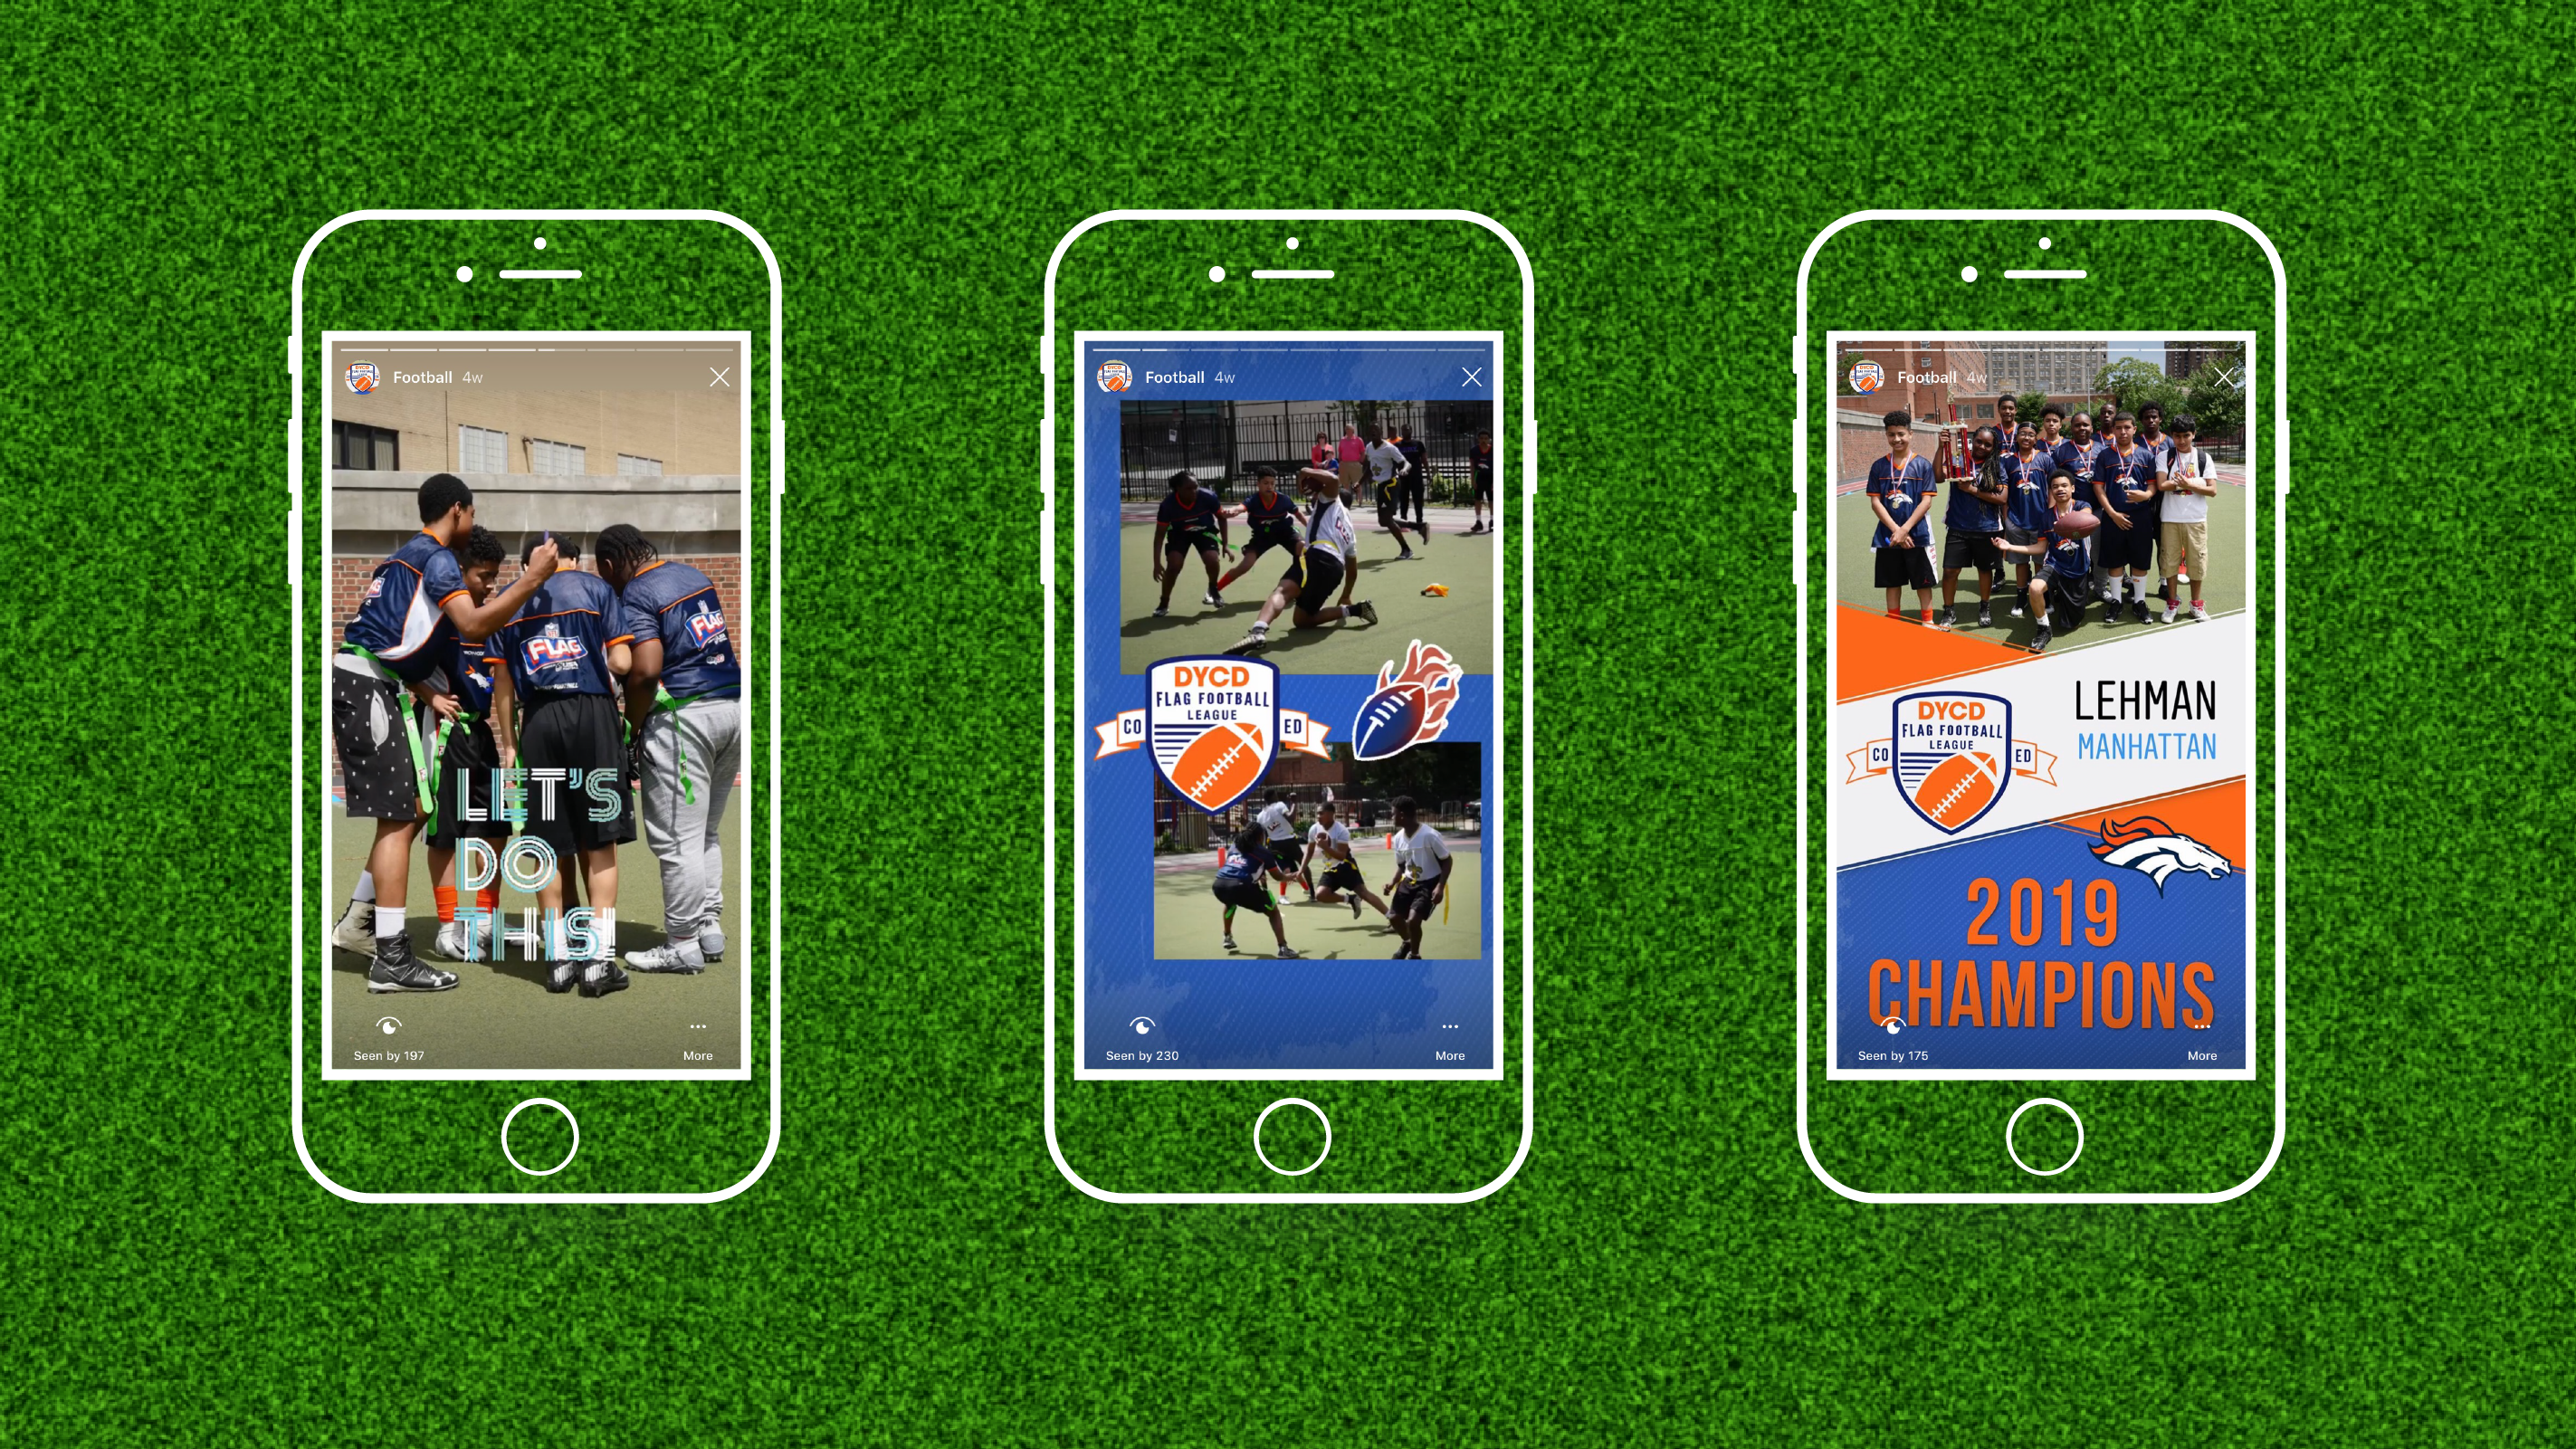 Three mobile screenshots of the Instagram stories from the DYCD Flag Football League Championship game as appeared on the @nycyouth Instagram account.